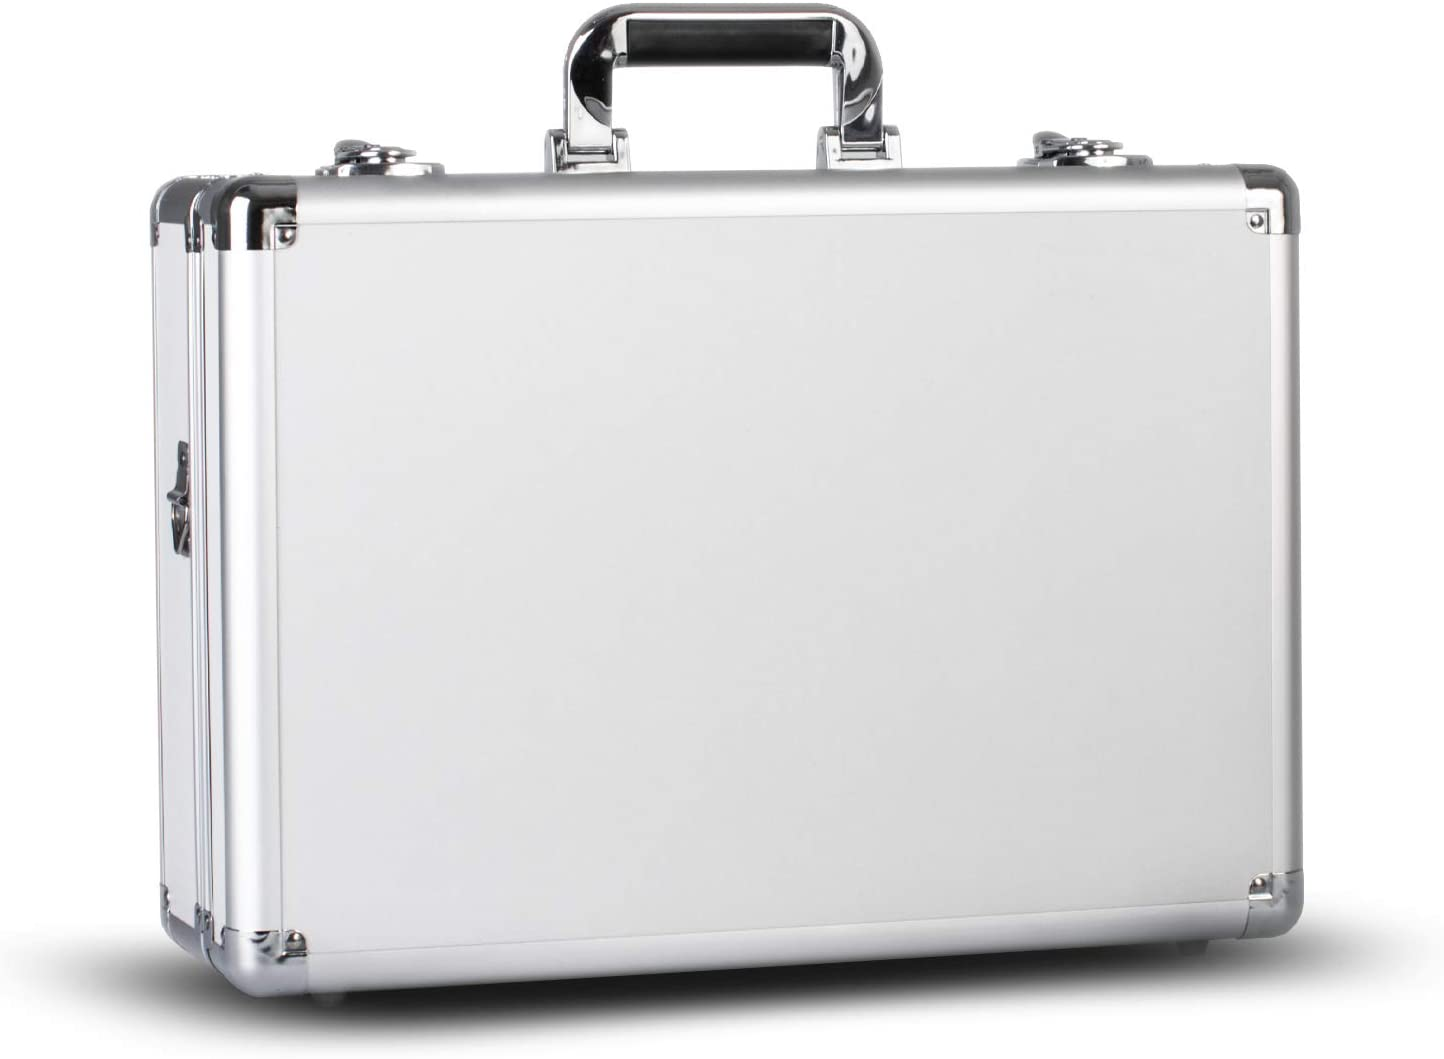 Zeikos Deluxe Medium Hard Shell Case with Extra Padding Foam for Cameras - Travel, and Storage Case Gear, Equipment, and Lenses - Canon, Nikon, and Many More DSLR Cameras – White